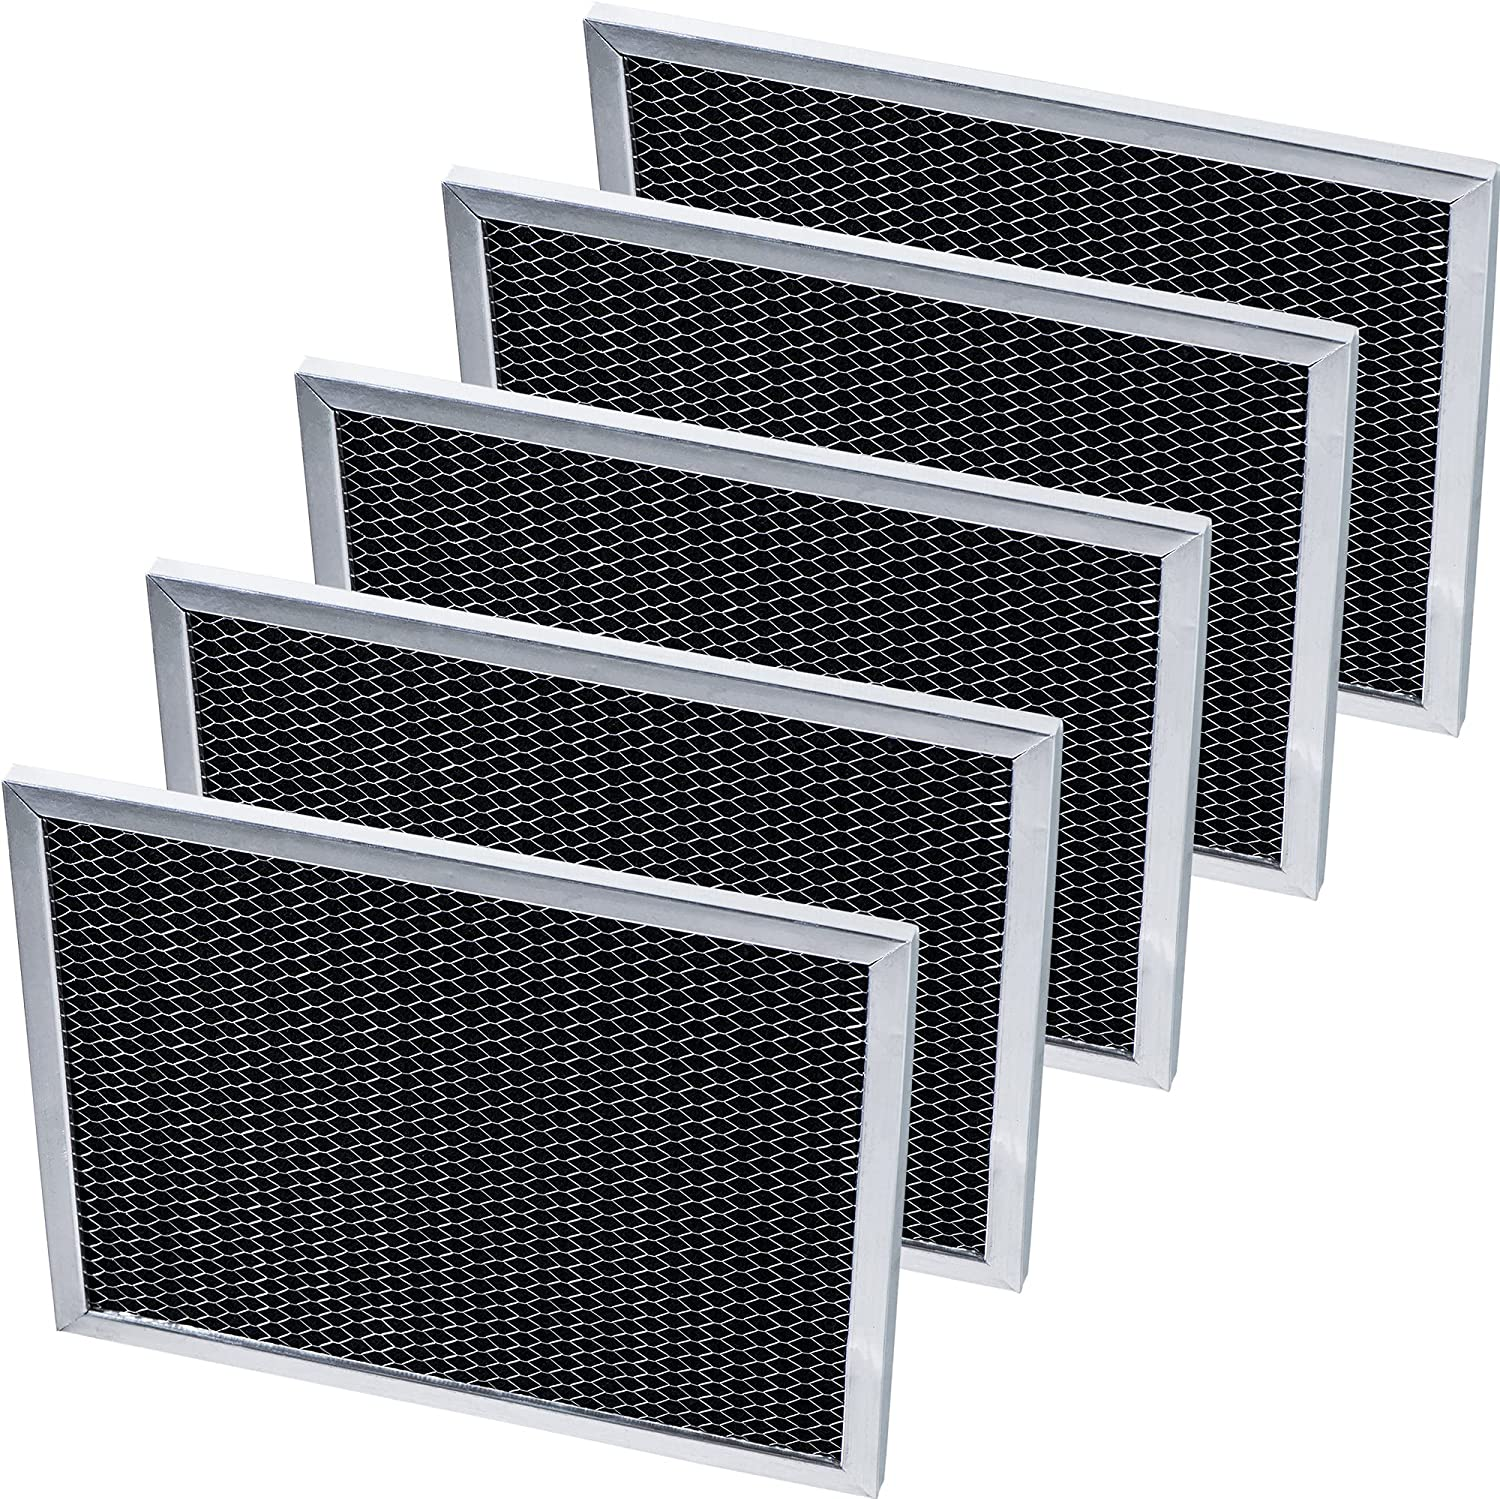 97007696 Range Hood Filter Premium Replacement Part by Canamax -